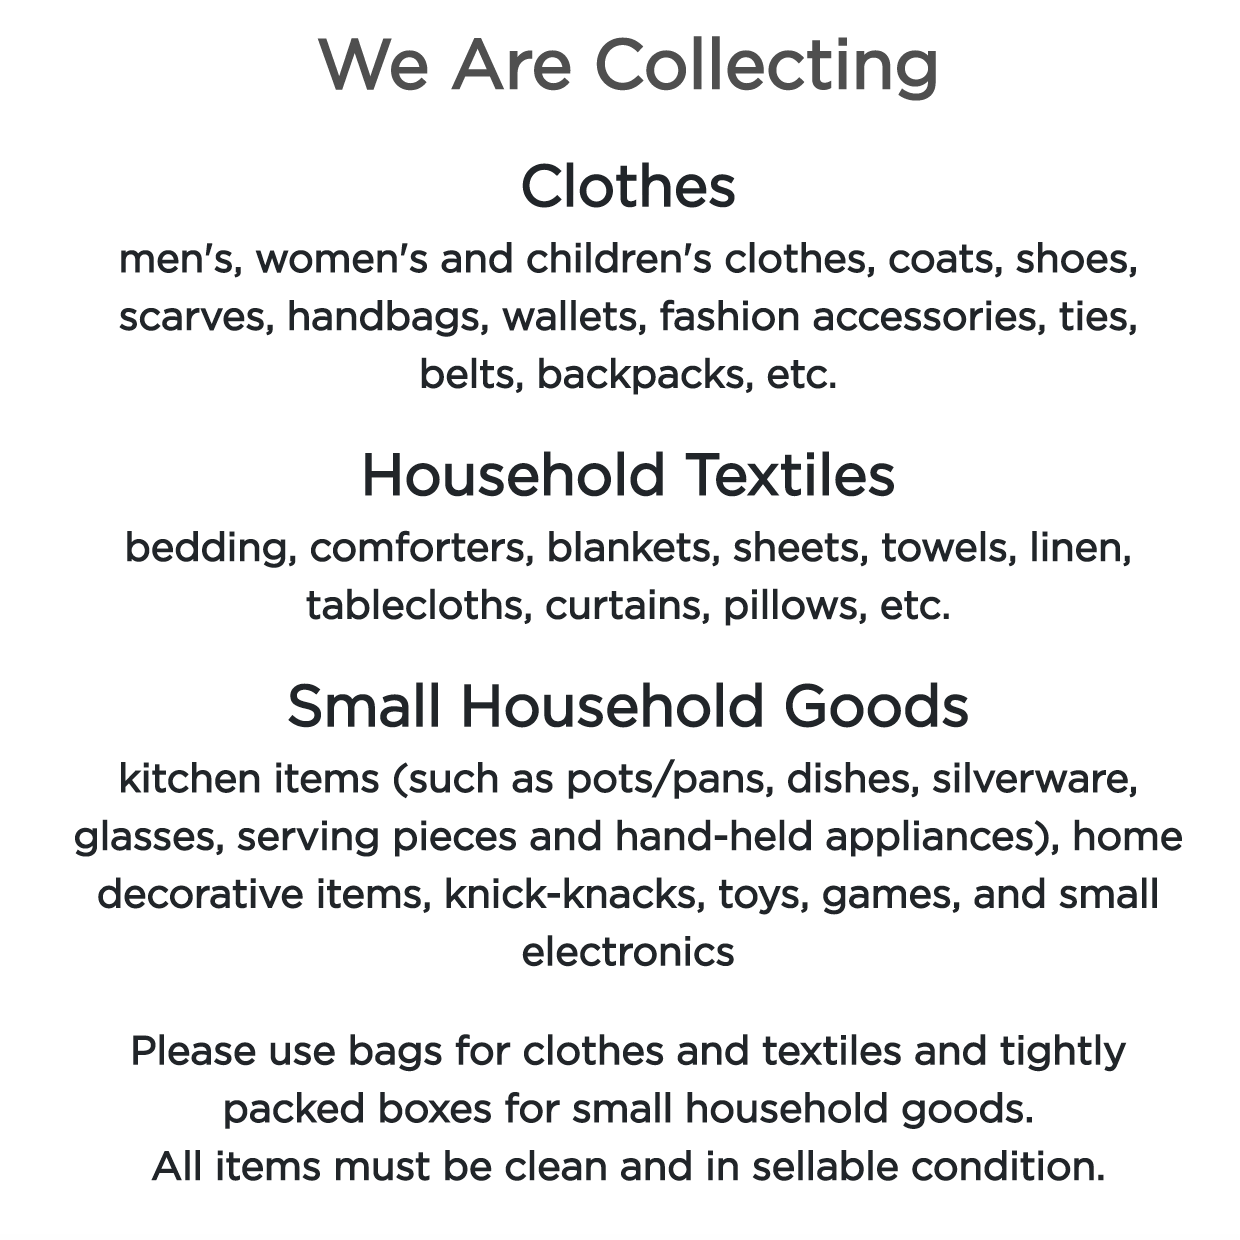 We are collecting...